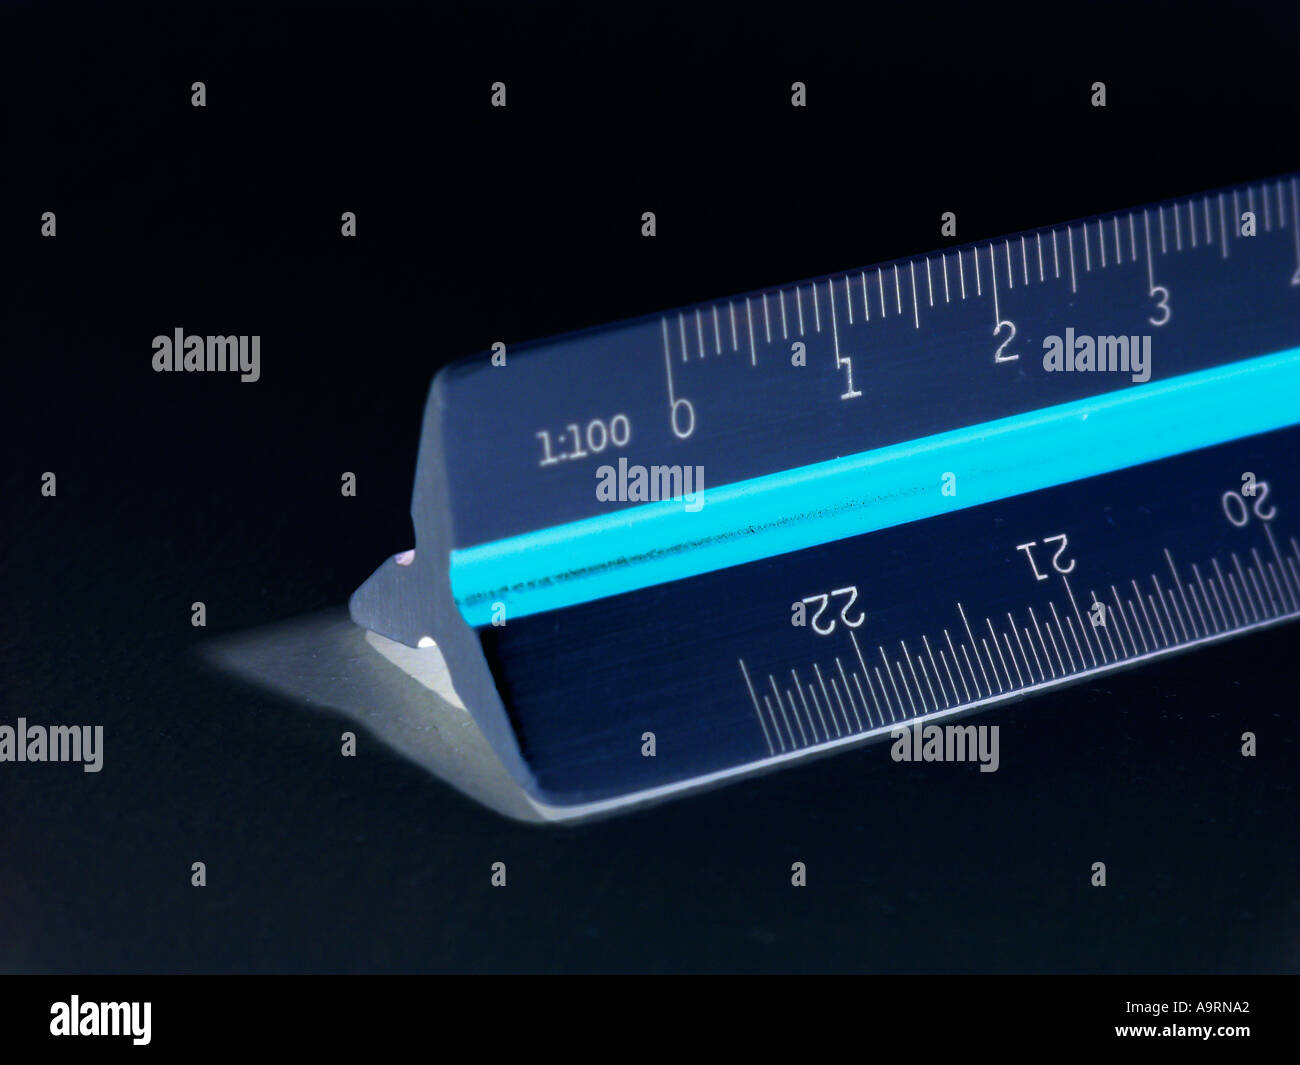 metric ruler showing milimeters as a symbol of the metric system - Stock Image